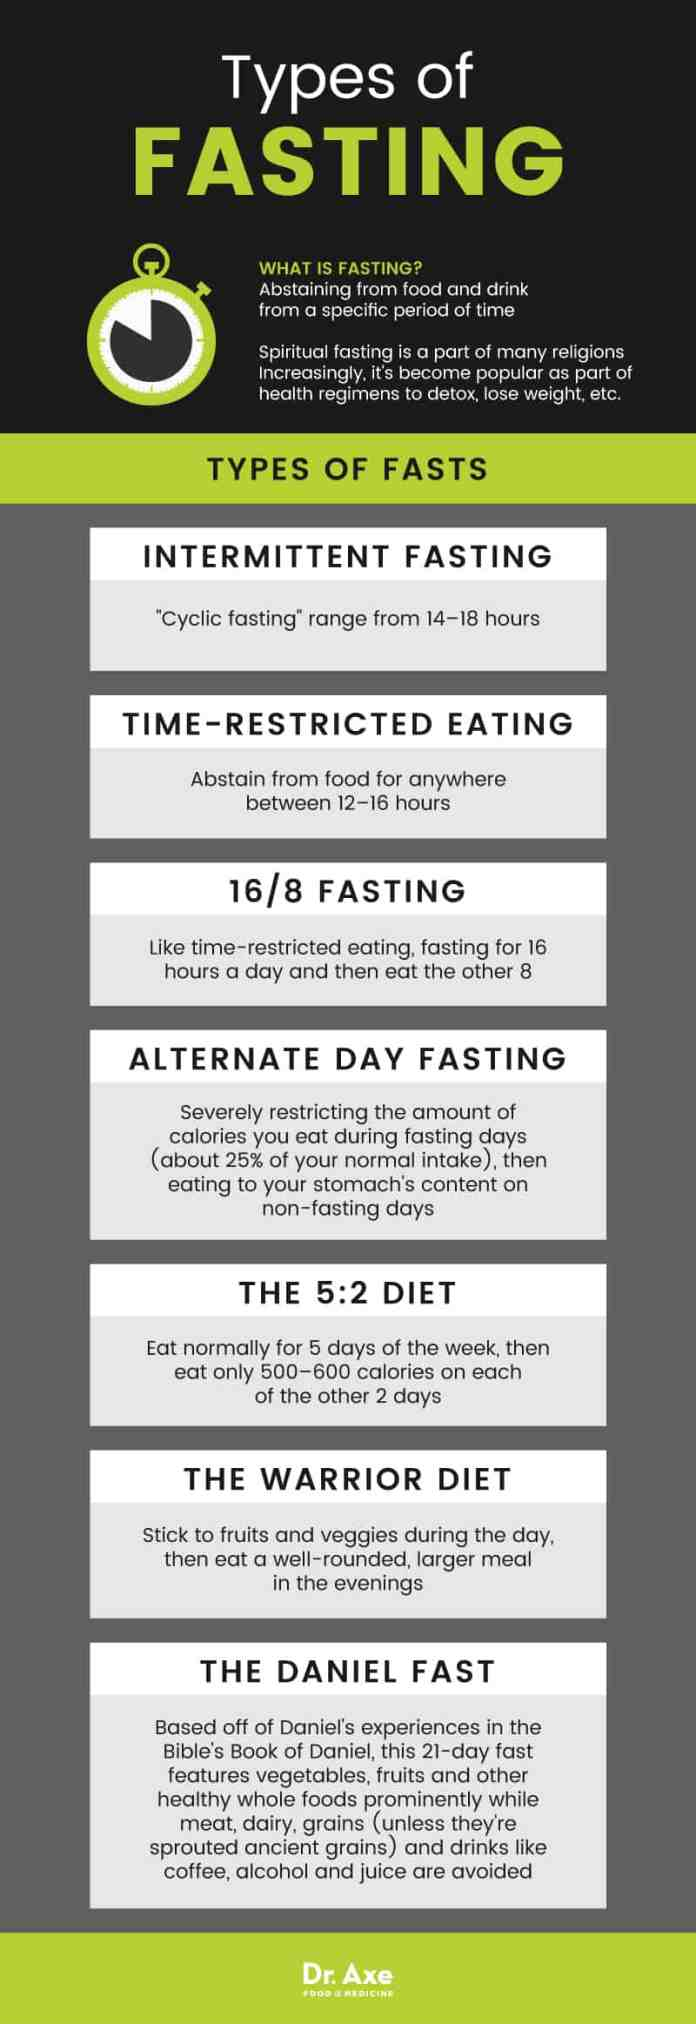 Types of fasting - Dr. Axe